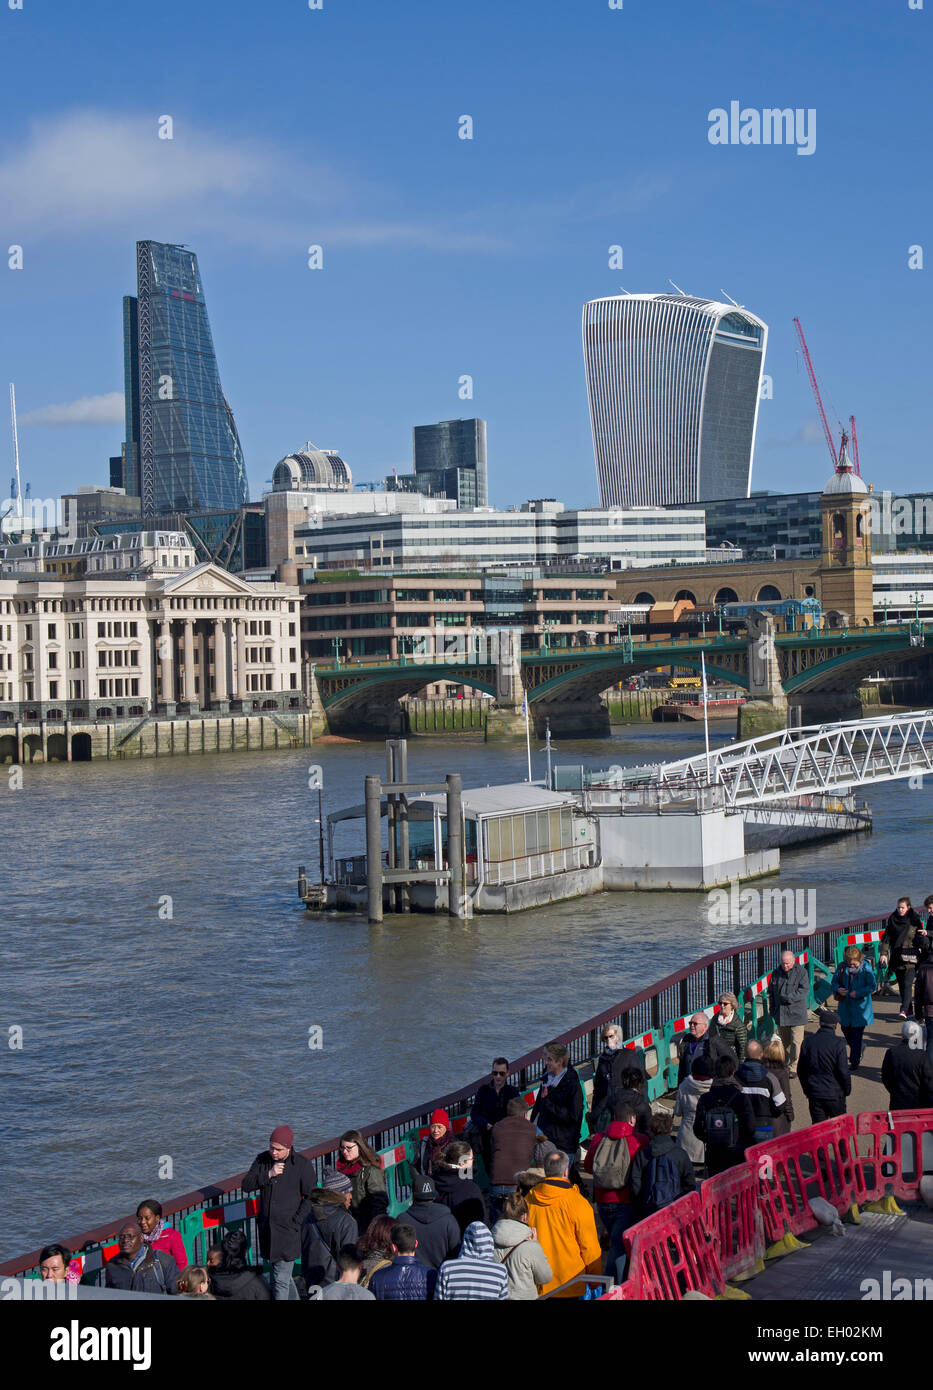 Visitors crowd the paths of the South Bank. View of the latest buildings of The City of London from the Millennium - Stock Image